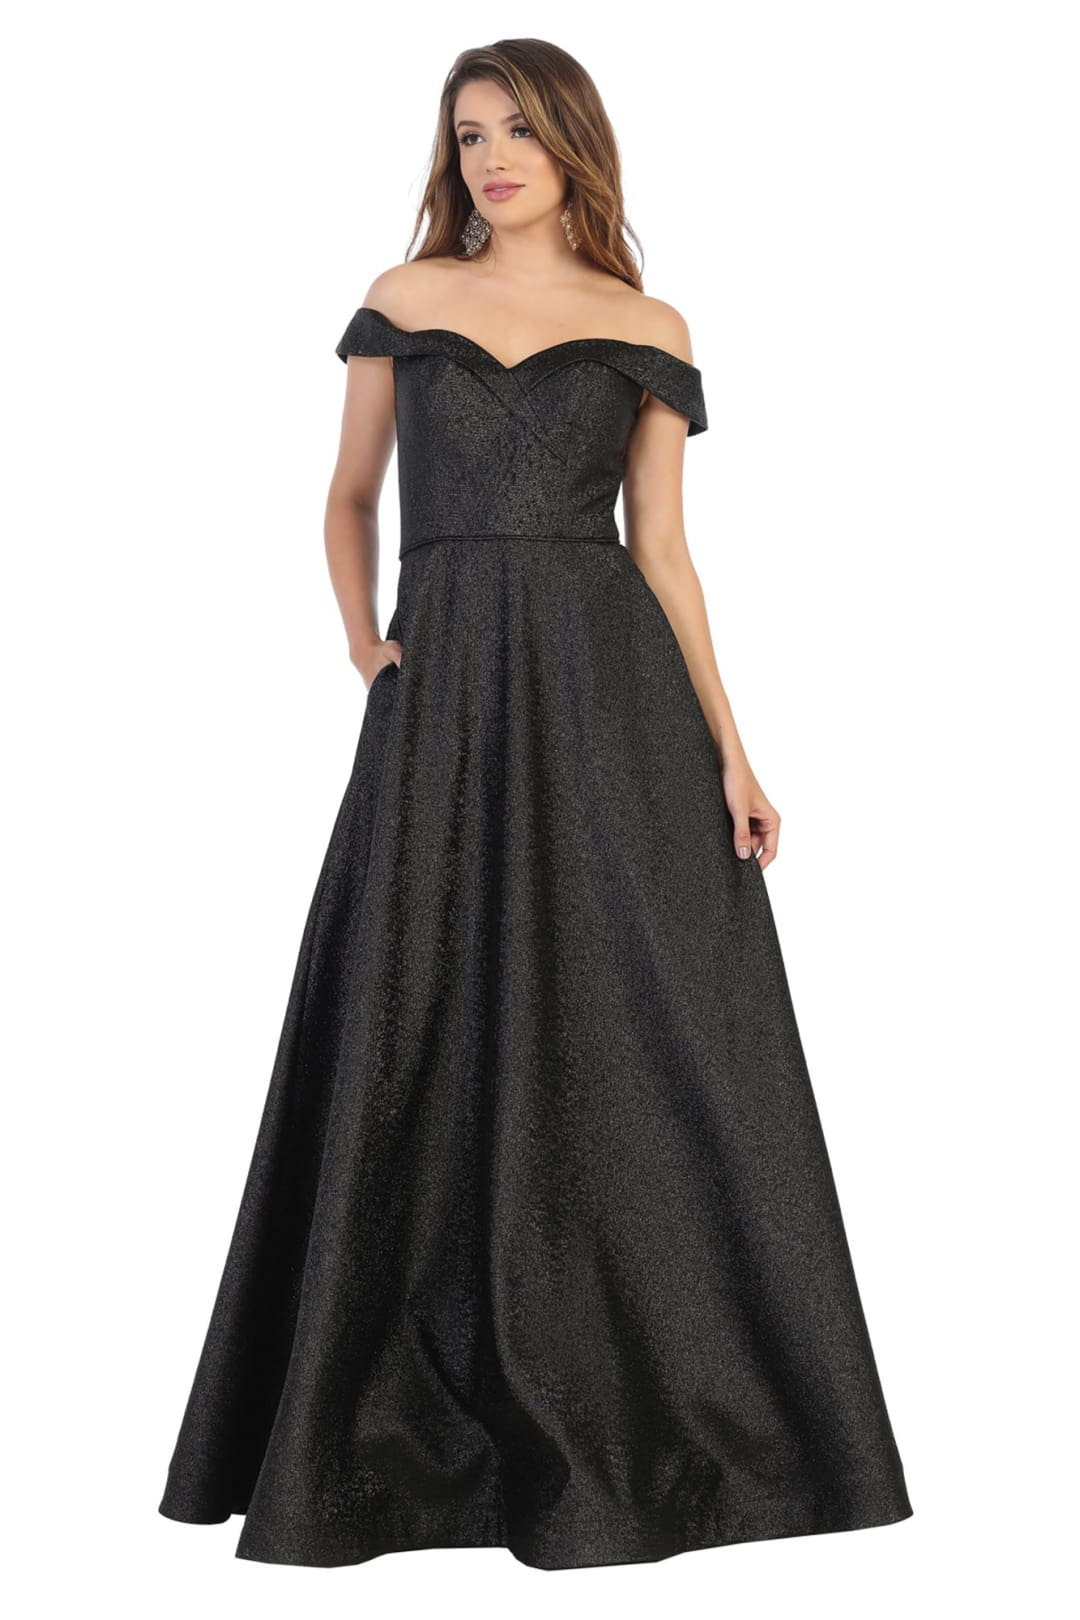 Off The Shoulder Prom Dresses And Plus Size - BLACK / 4